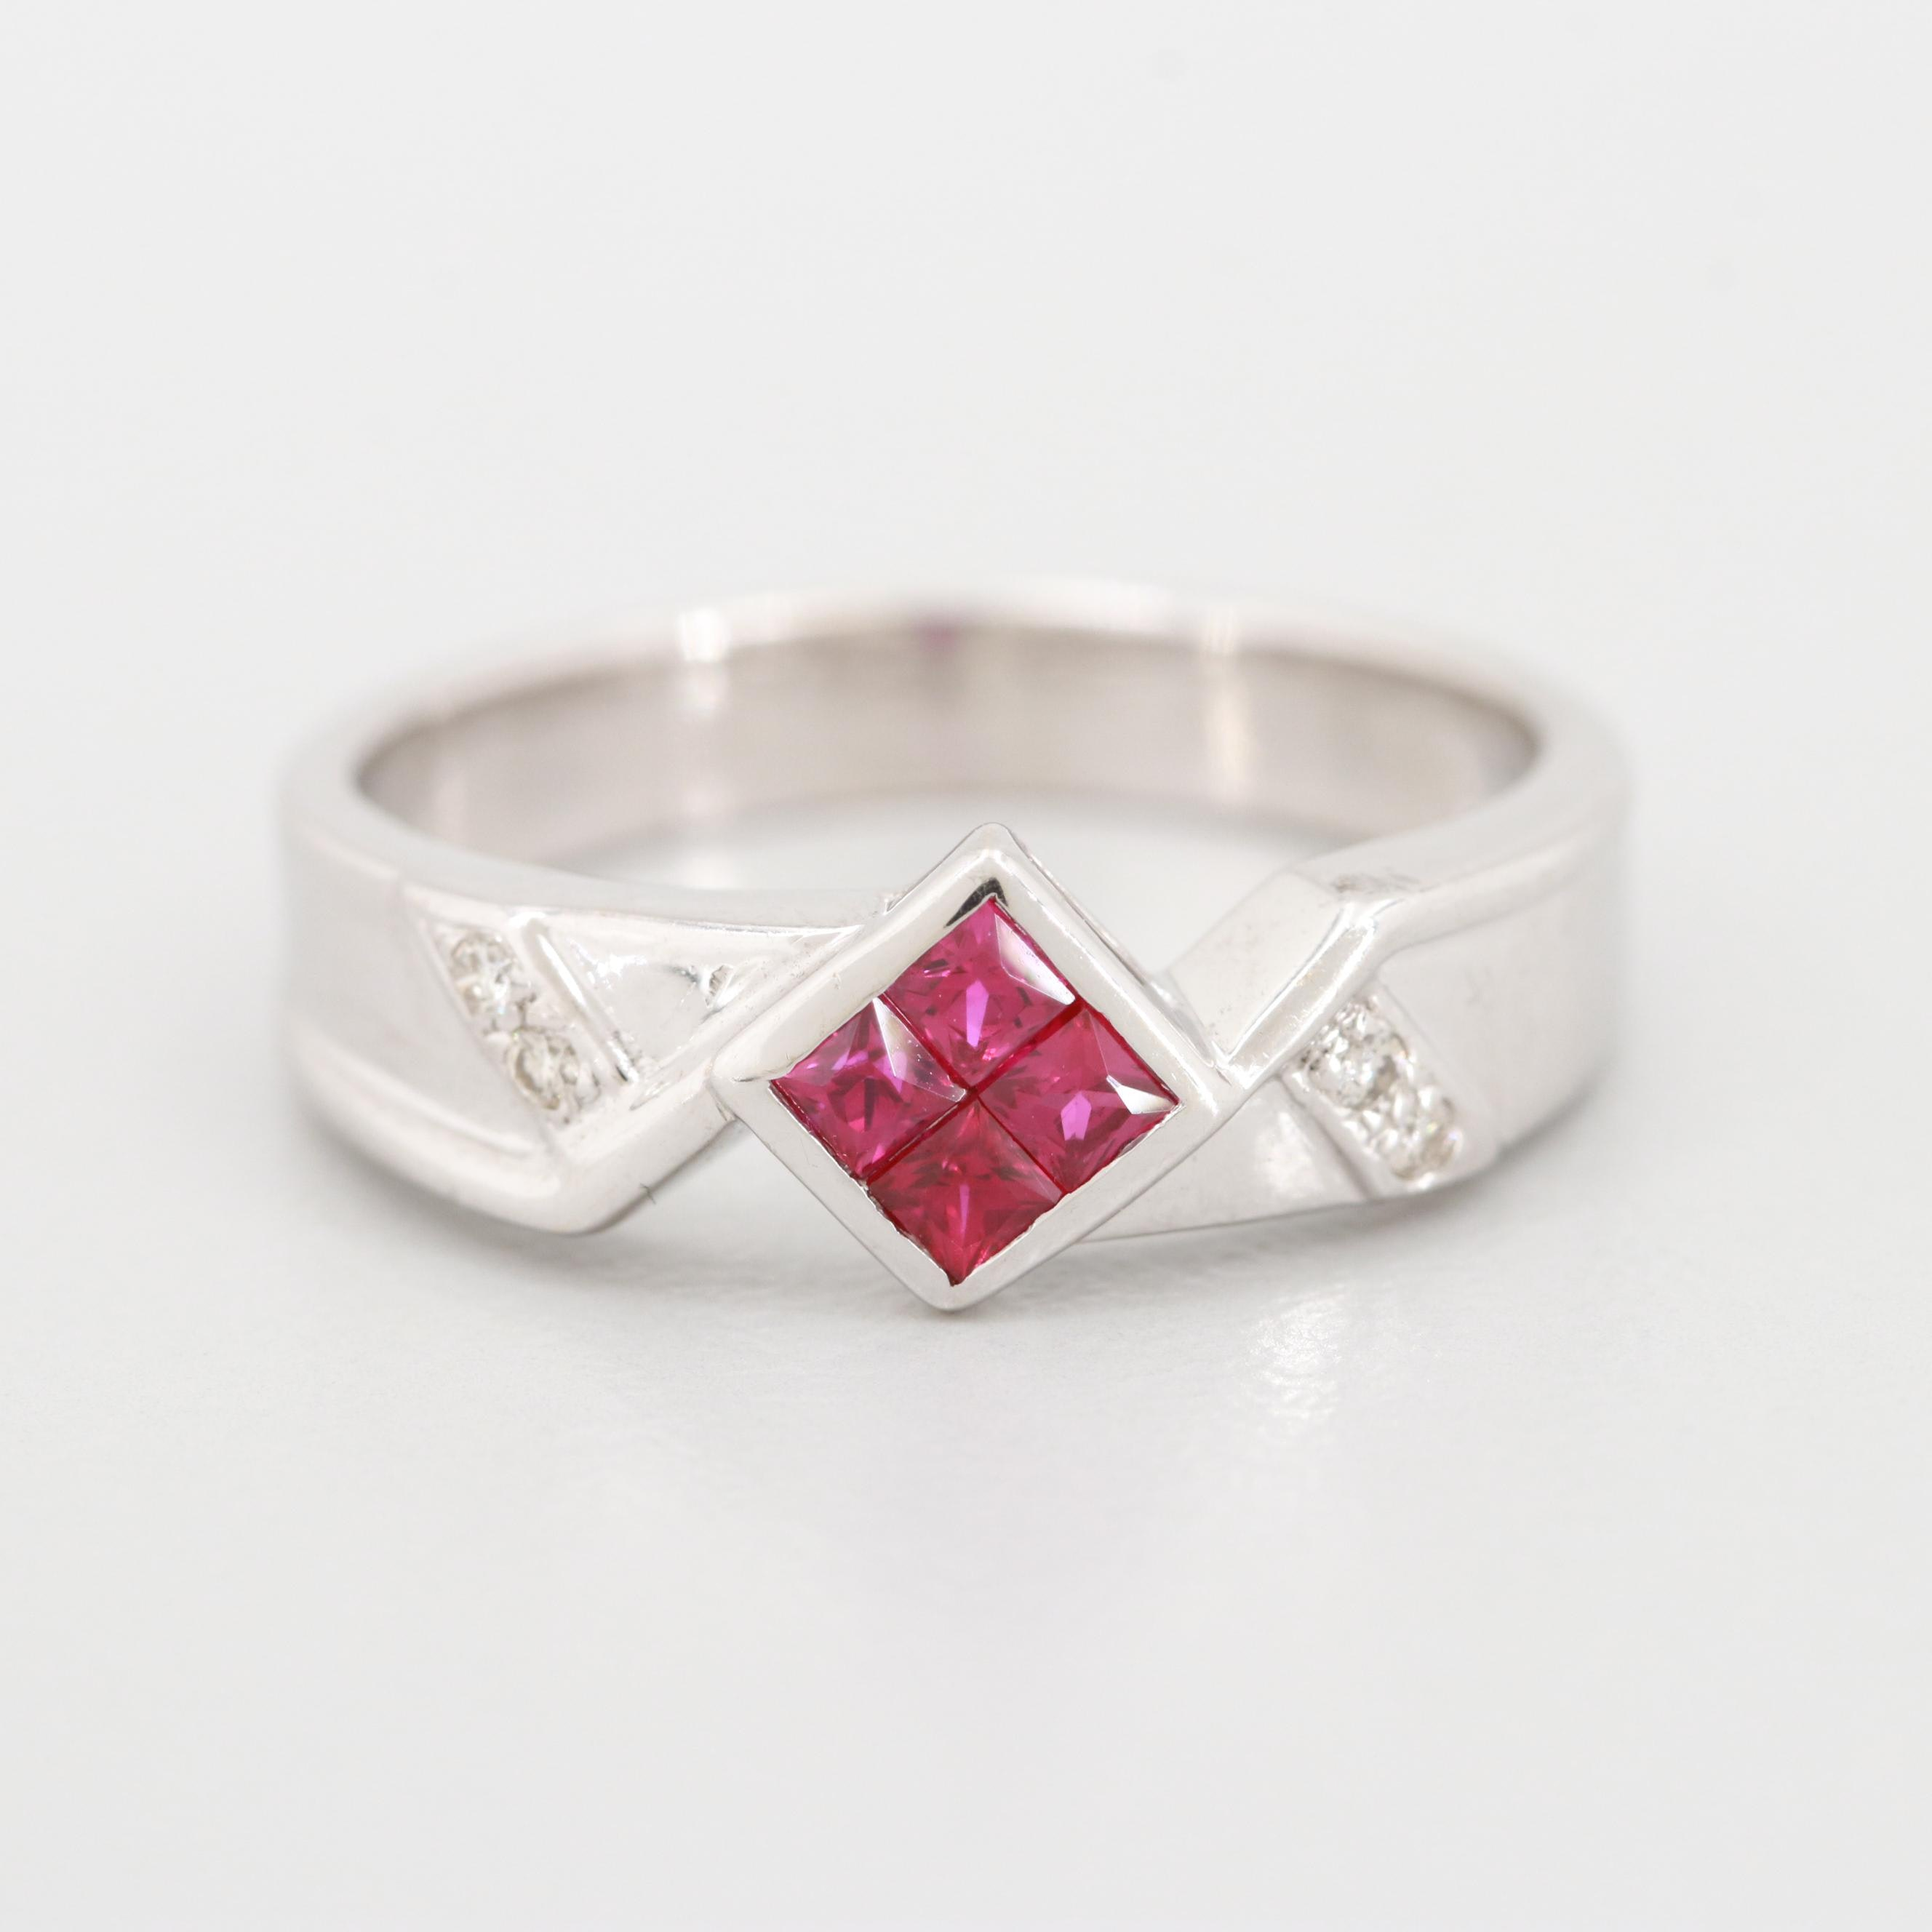 18K White Gold Diamond and Synthetic Ruby Ring